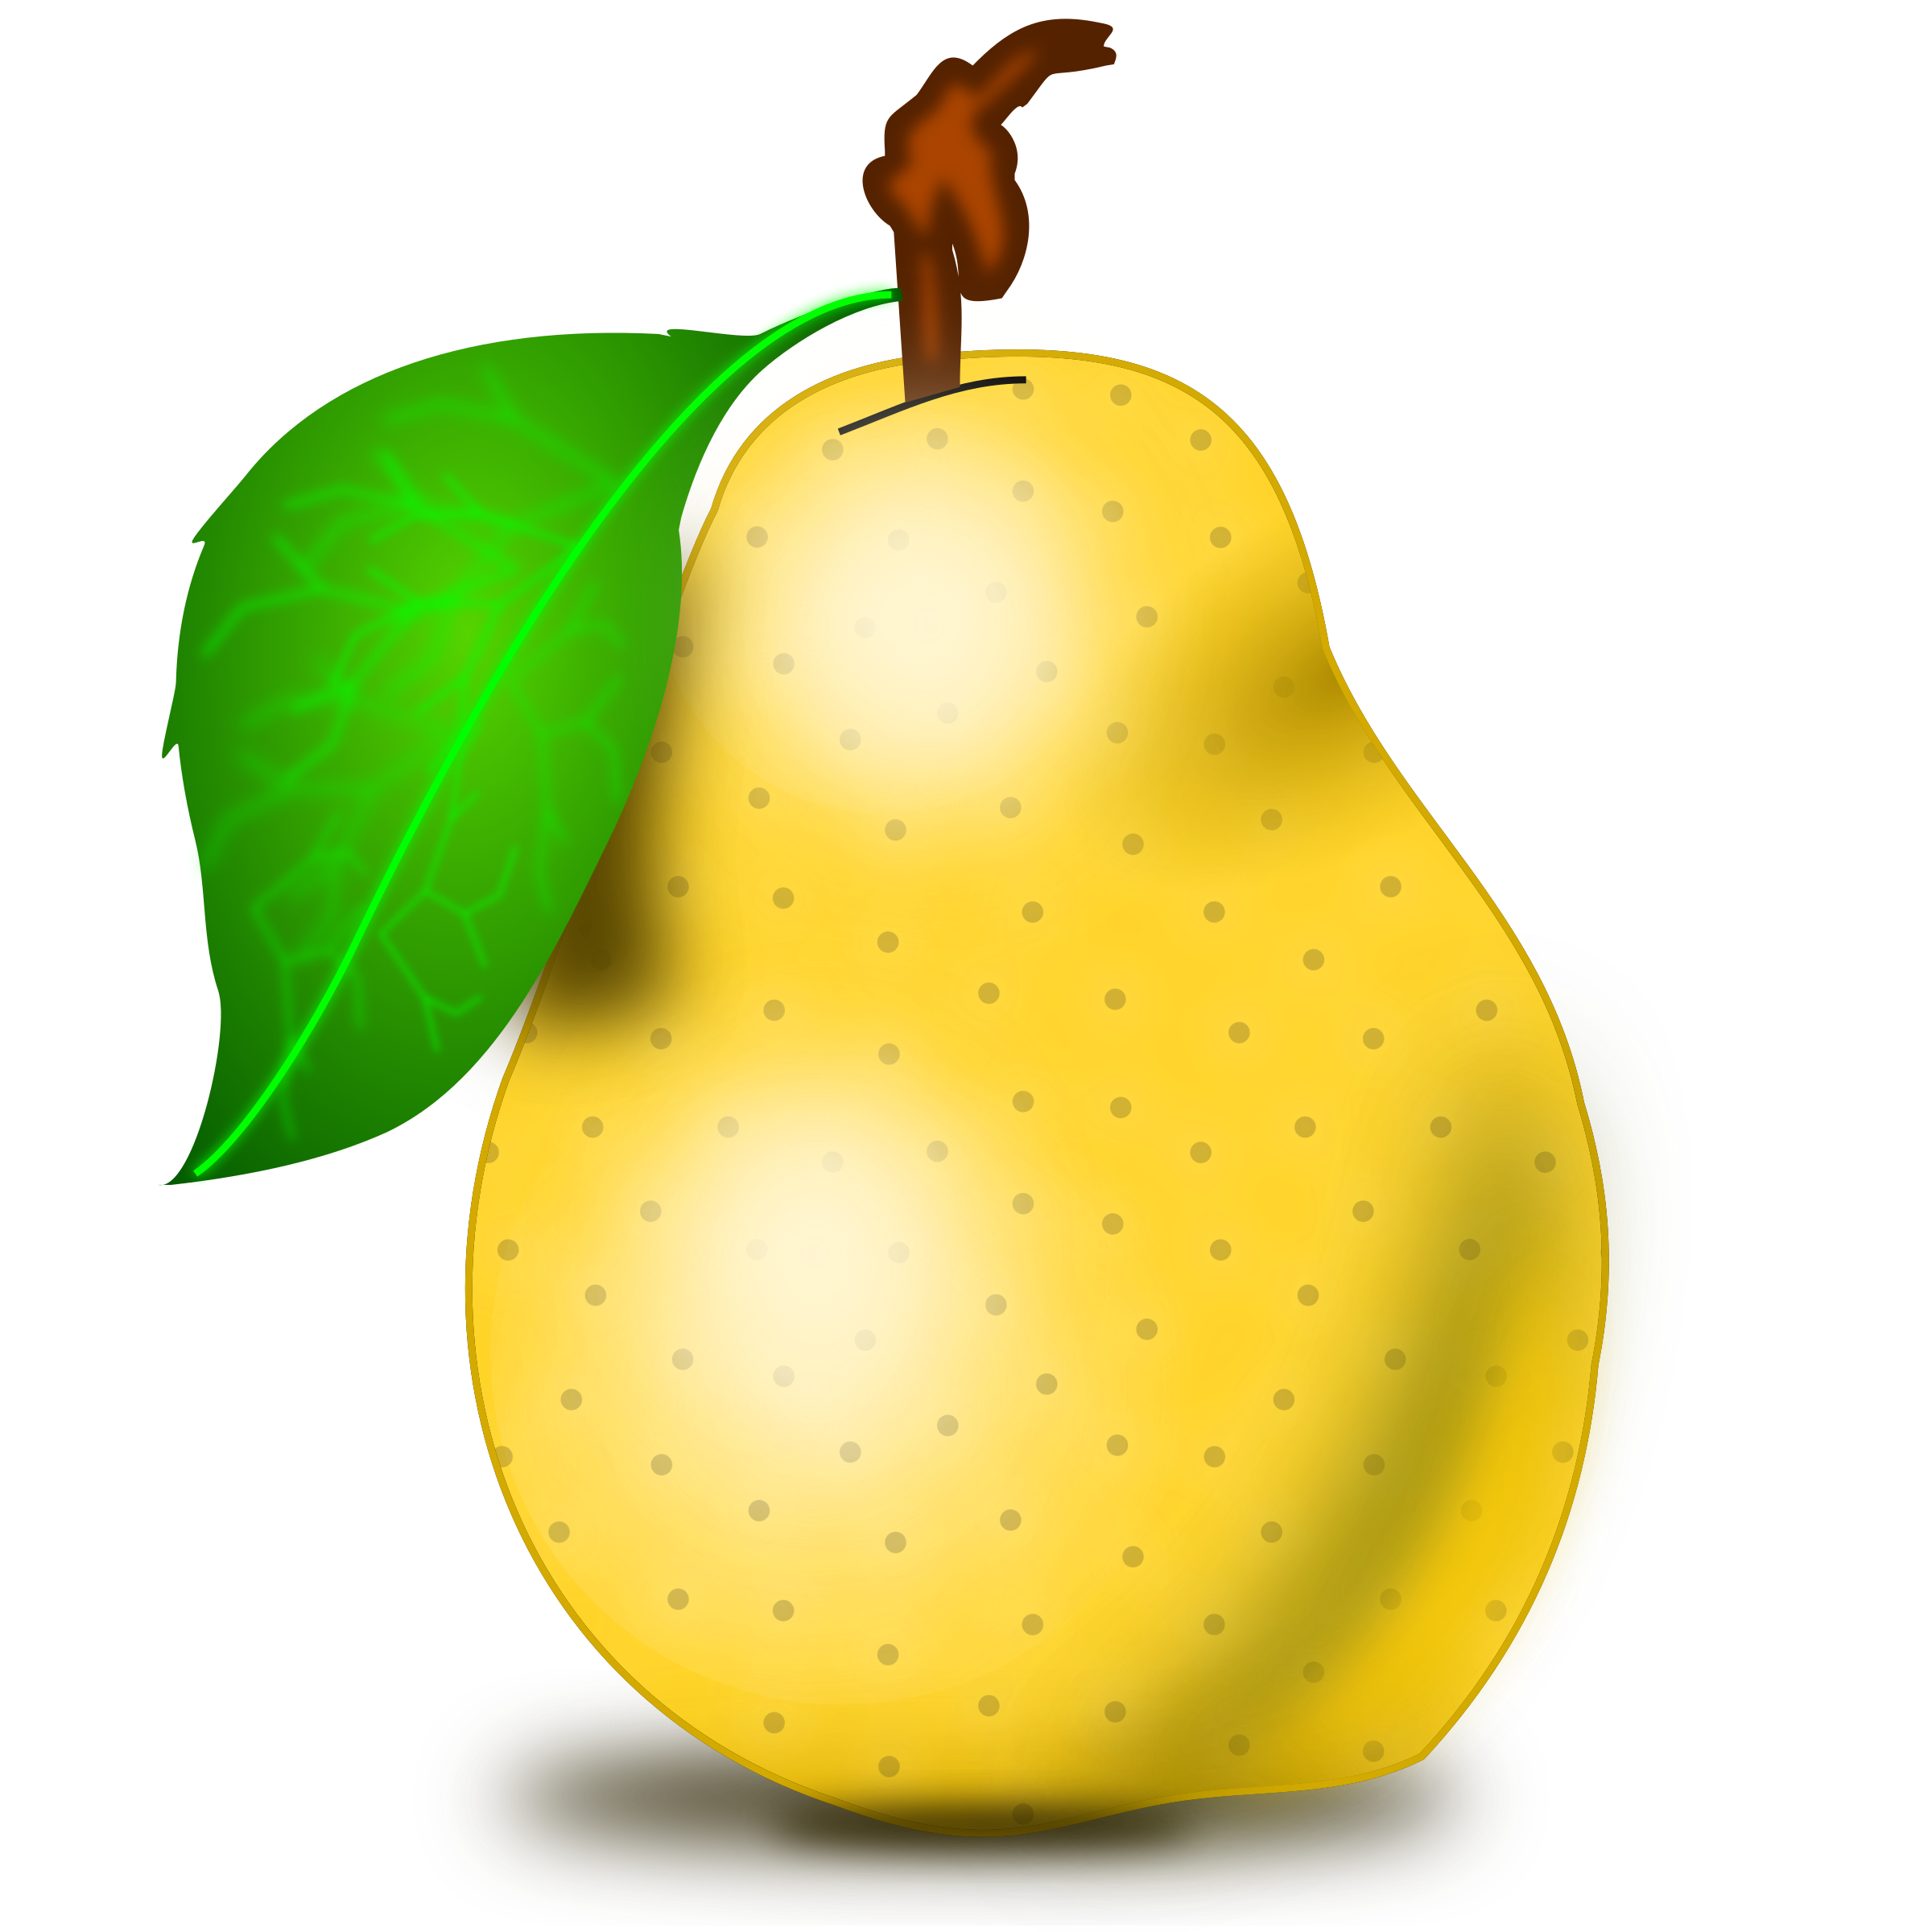 Pear by mrallowski